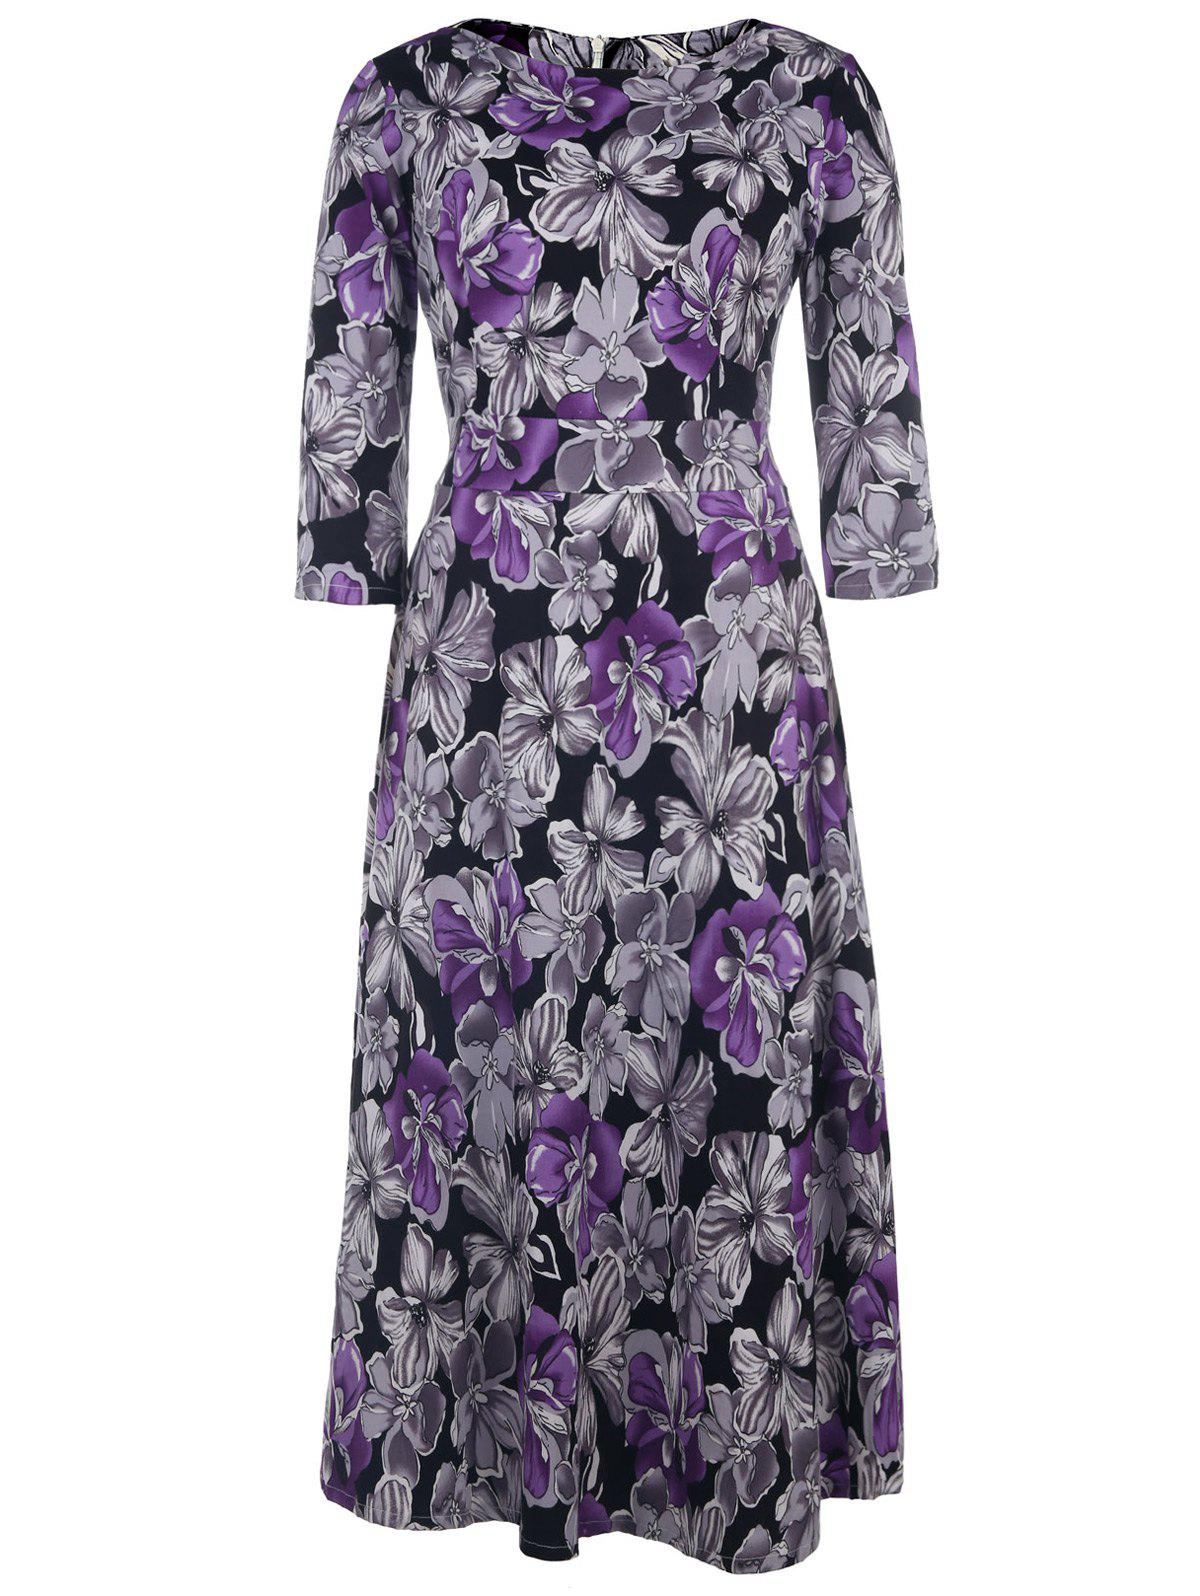 Vintage Style 1/2 Sleeve Round Neck Purple and Gray Flower Pattern Womens DressWomen<br><br><br>Size: L<br>Color: PURPLE